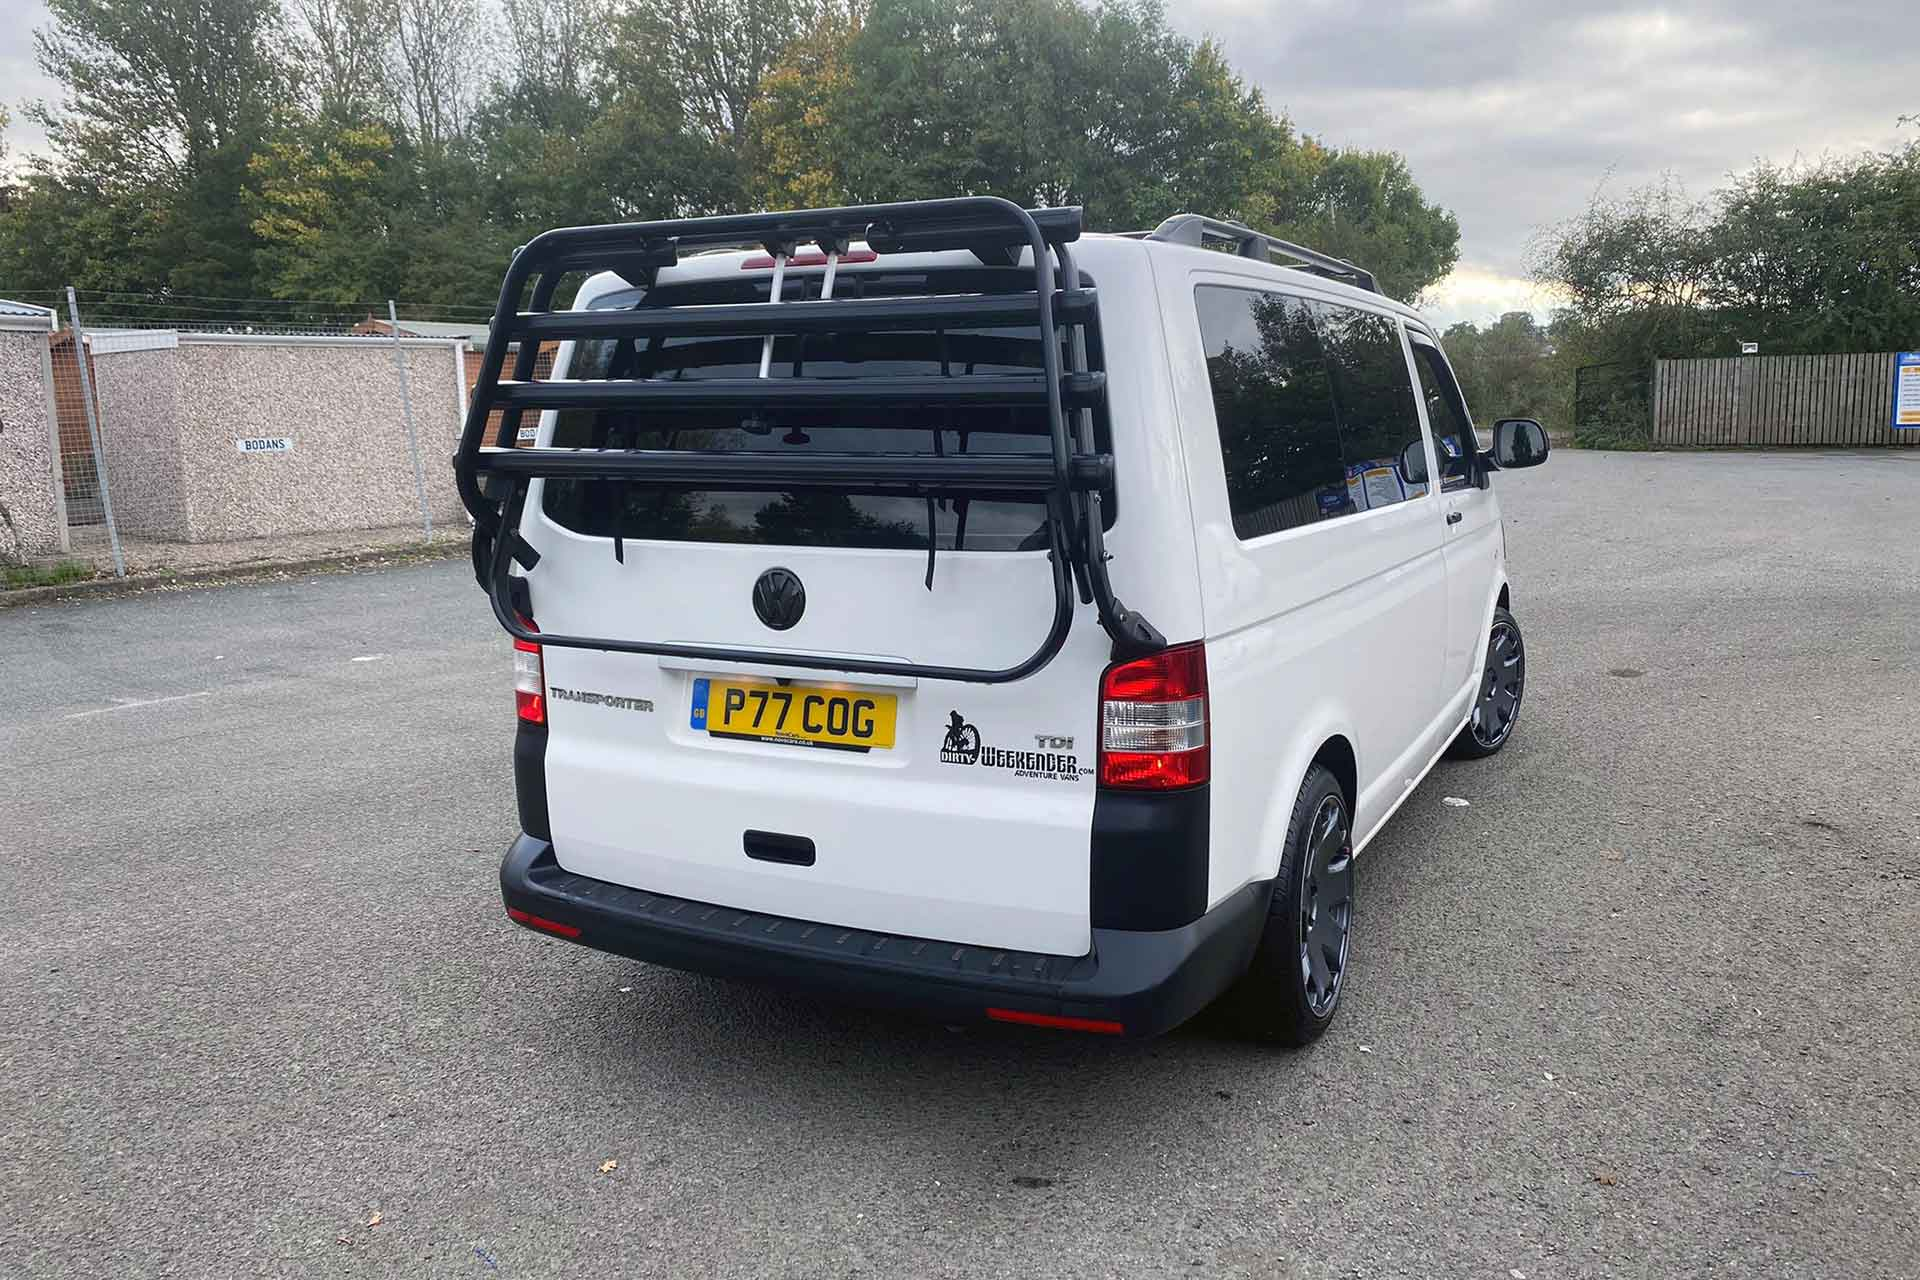 VW Caravelle Cycle Carrier